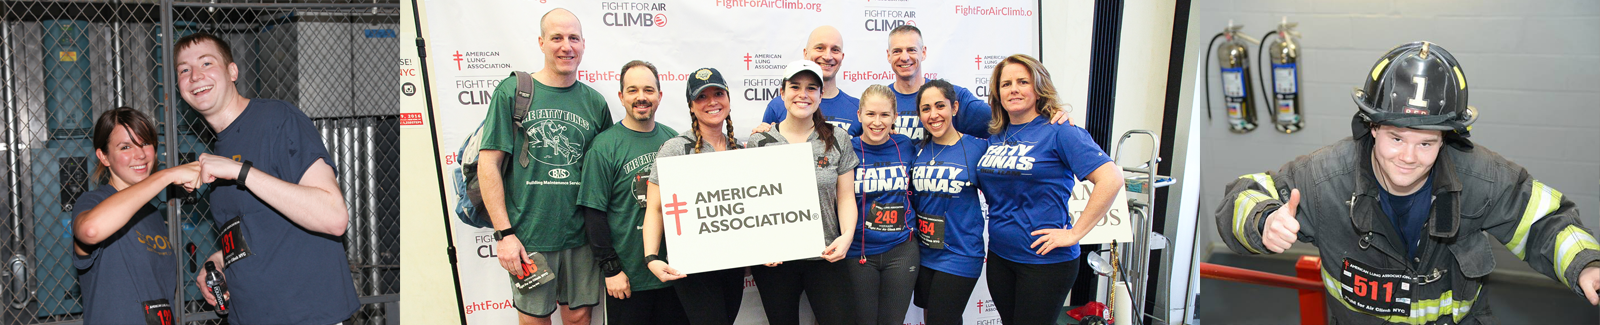 Fight For Air Climb. Step Up to the Challenge!